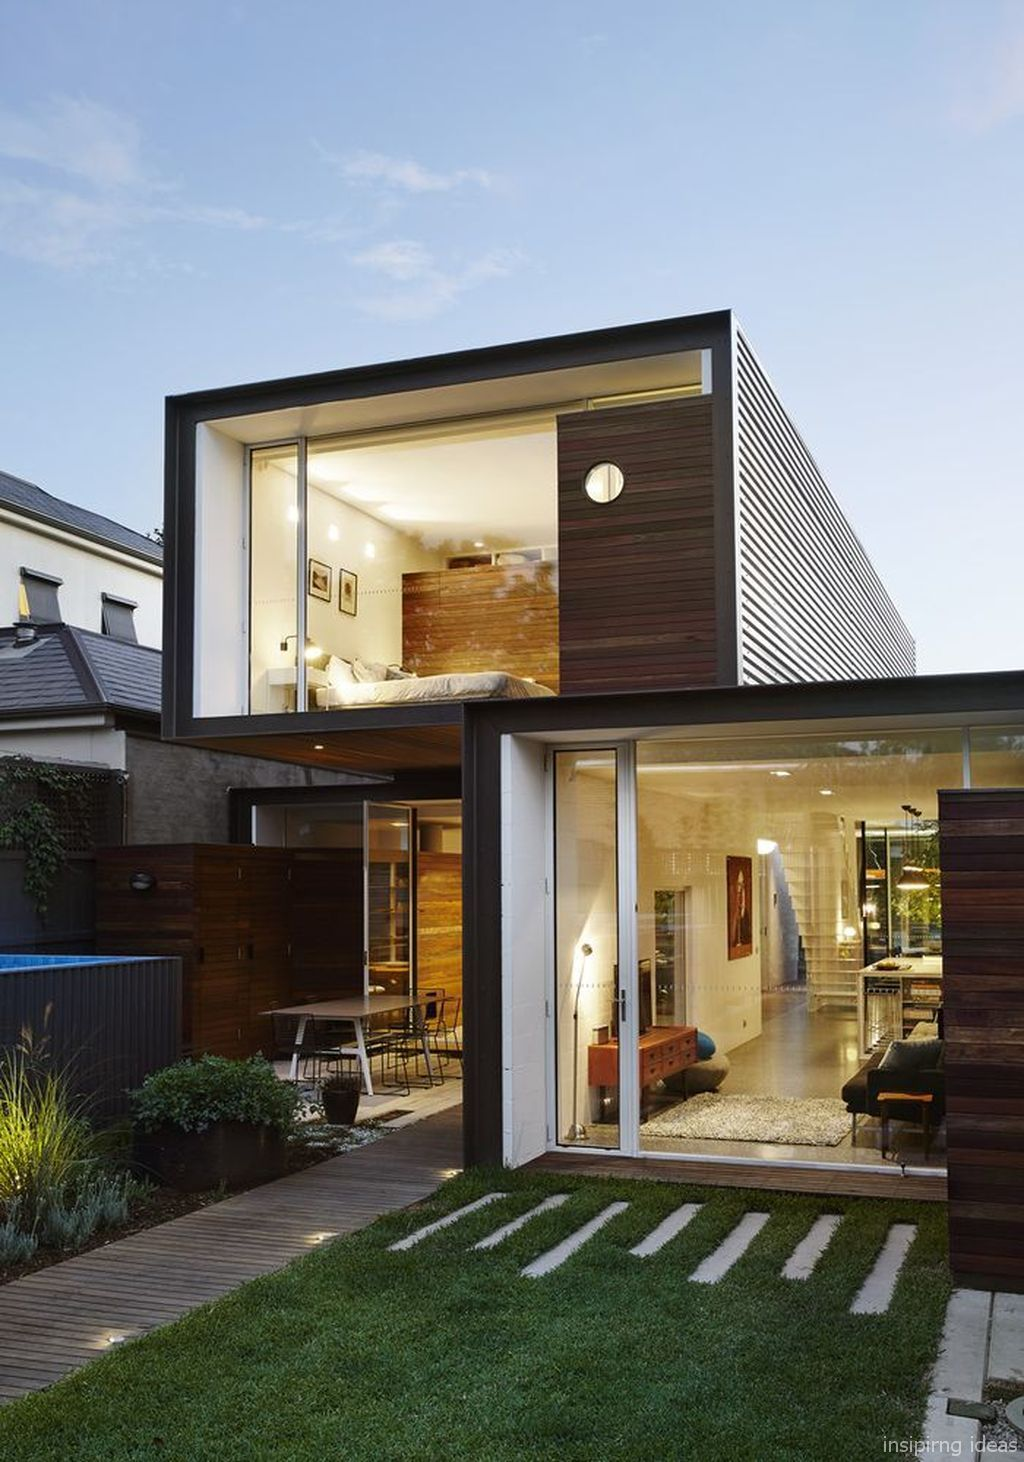 The Hot Trend Of Shipping Container Homes Fulfills Many